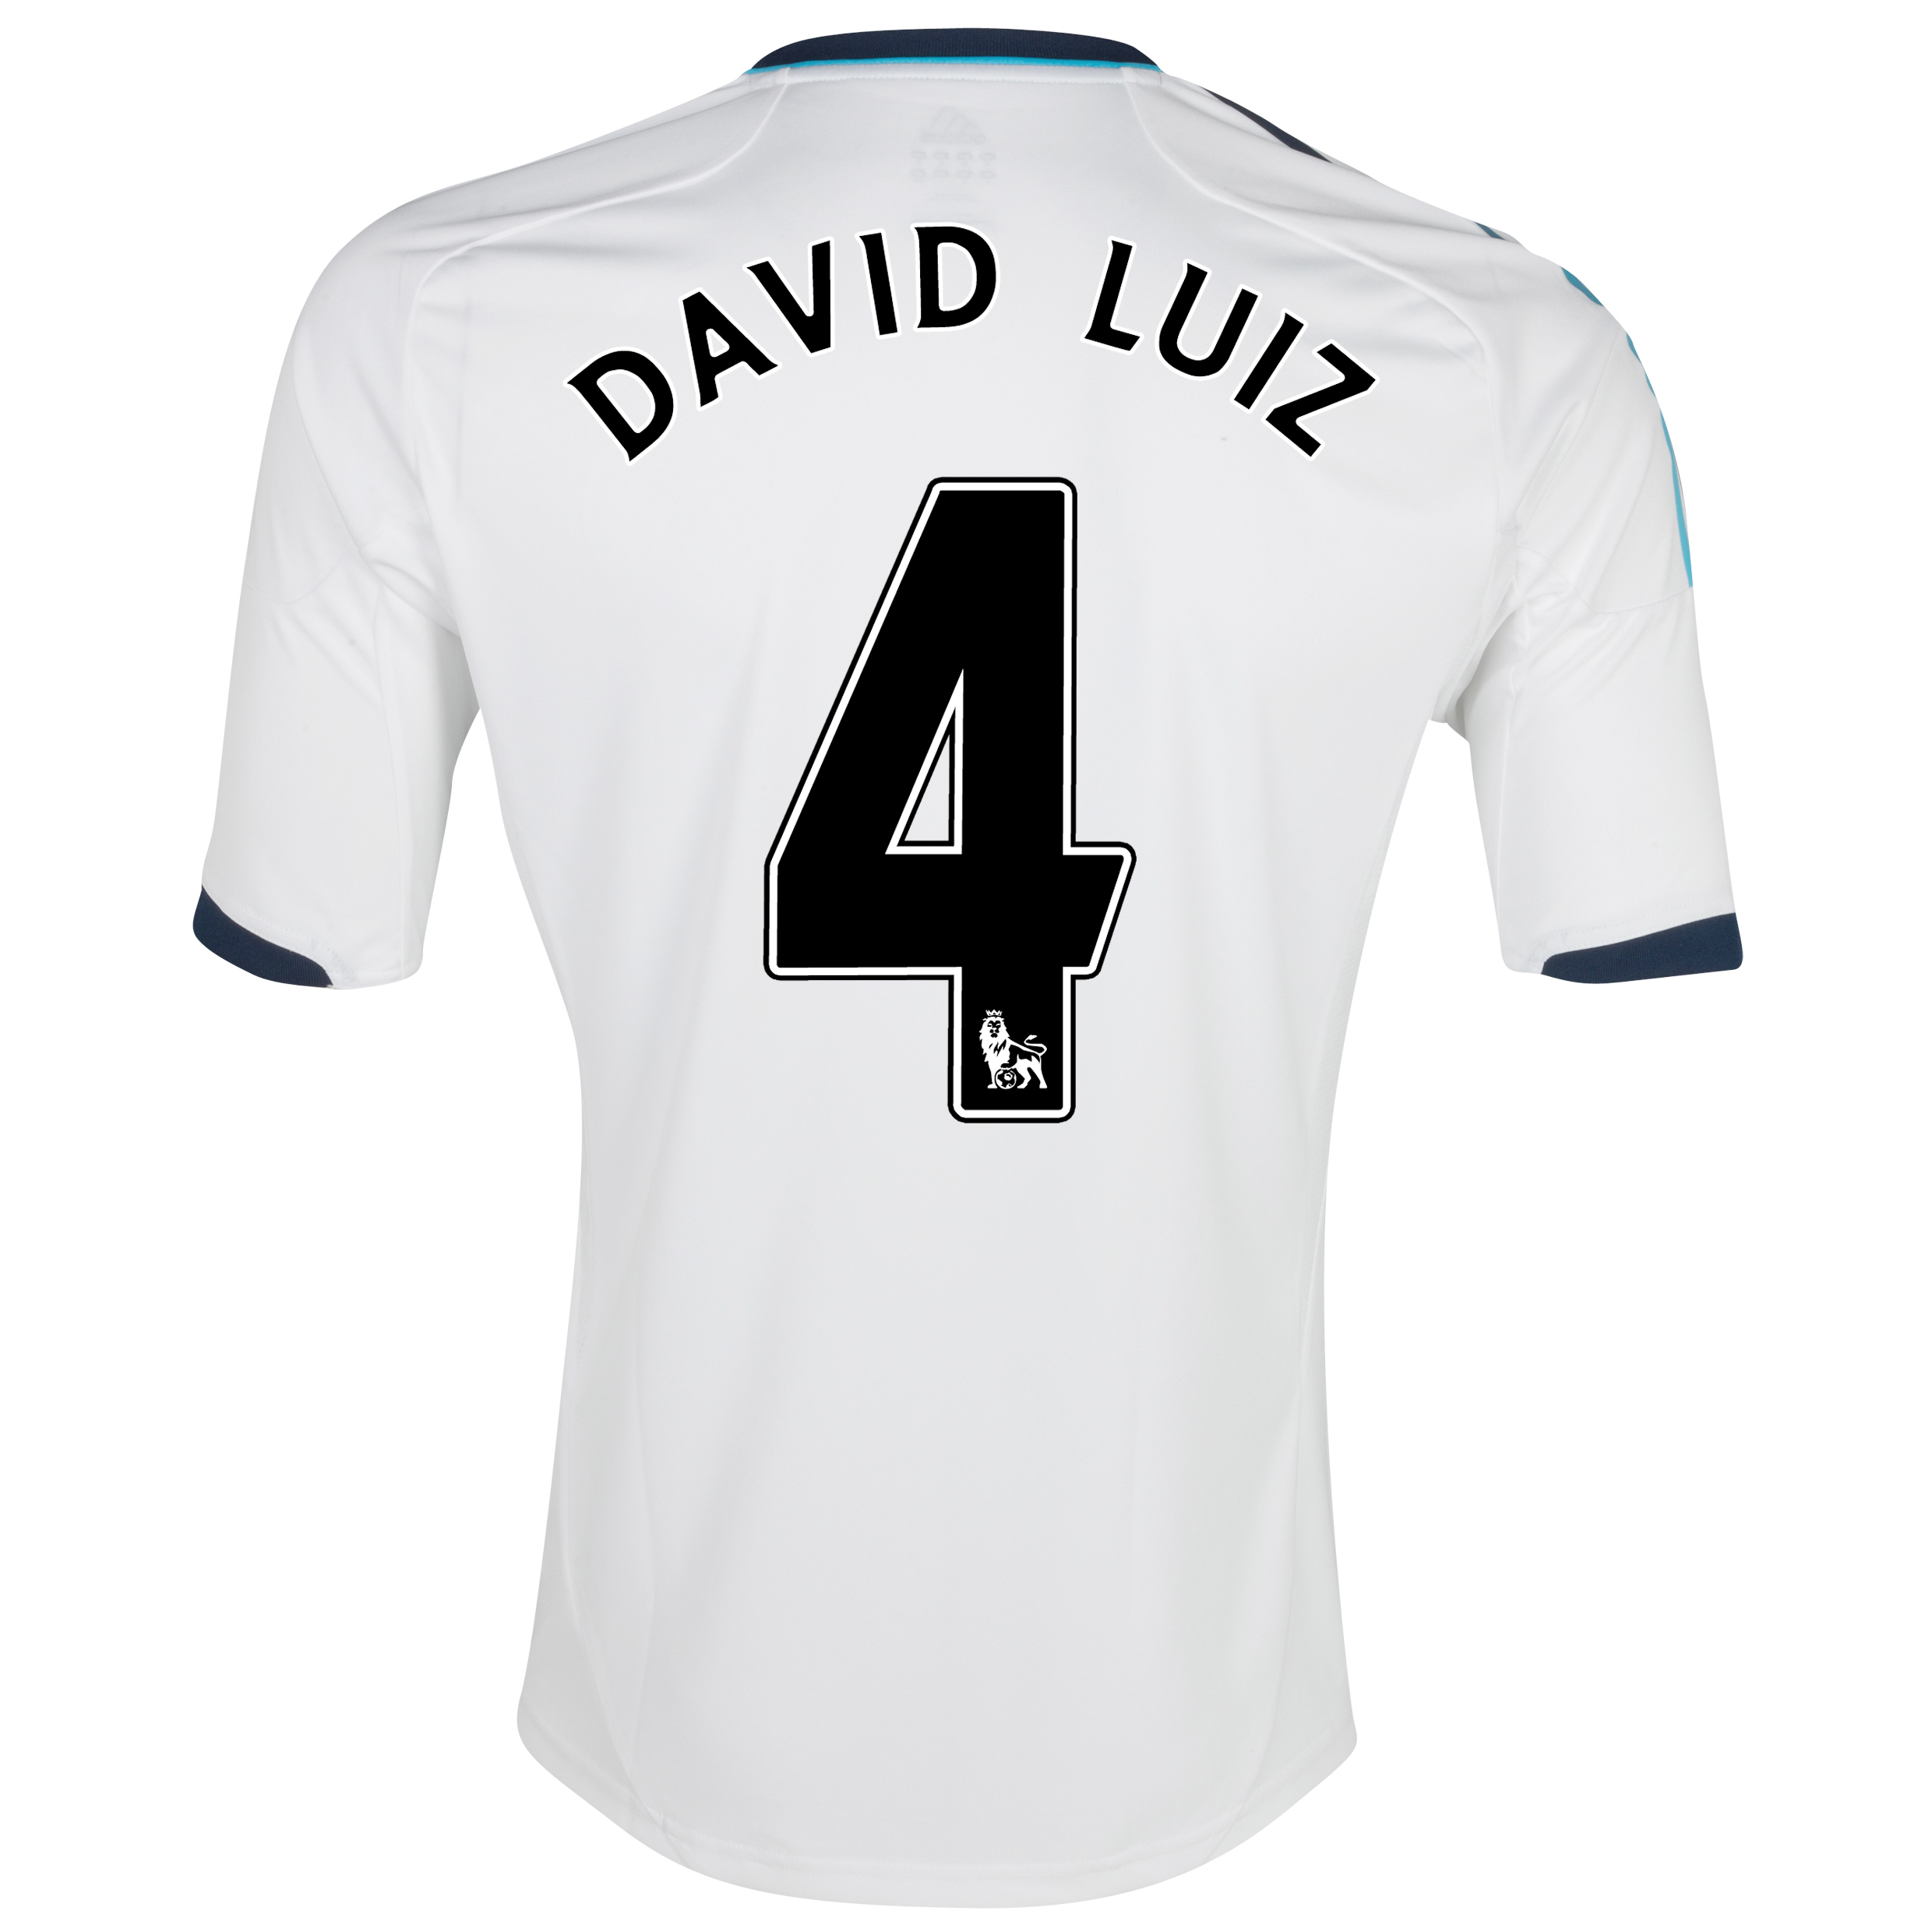 Chelsea Away Shirt 2012/13 - Youths with David Luiz 4 printing